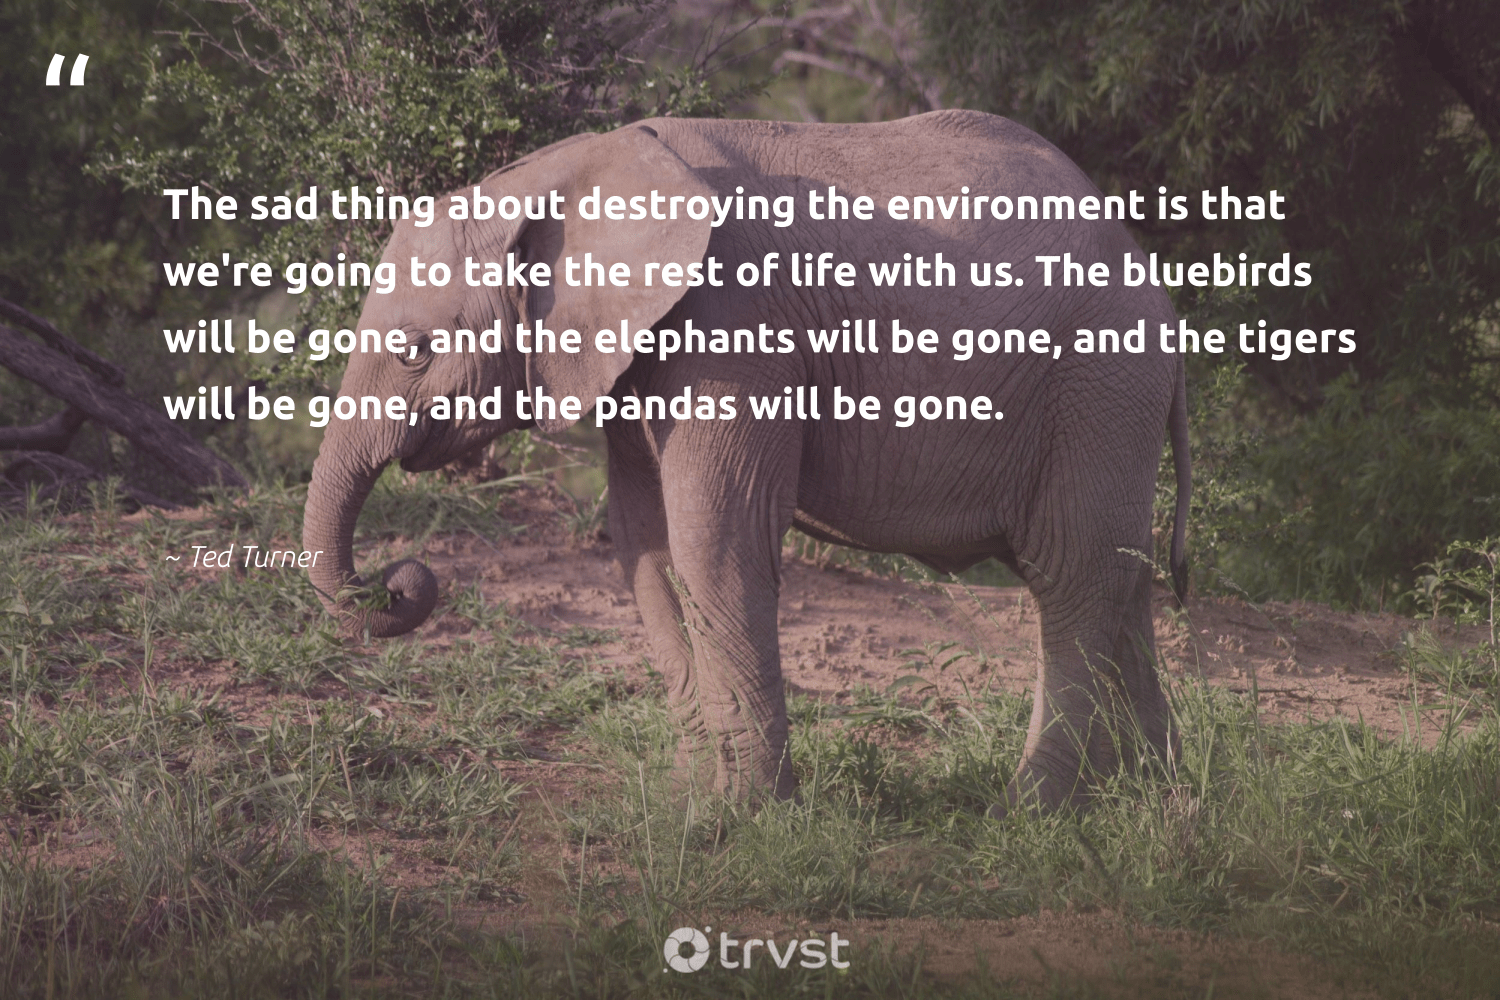 """""""The sad thing about destroying the environment is that we're going to take the rest of life with us. The bluebirds will be gone, and the elephants will be gone, and the tigers will be gone, and the pandas will be gone.""""  - Ted Turner #trvst #quotes #environment #elephants #mothernature #elephant #sustainableliving #impact #conservation #elephantlover #volunteer #gogreen"""